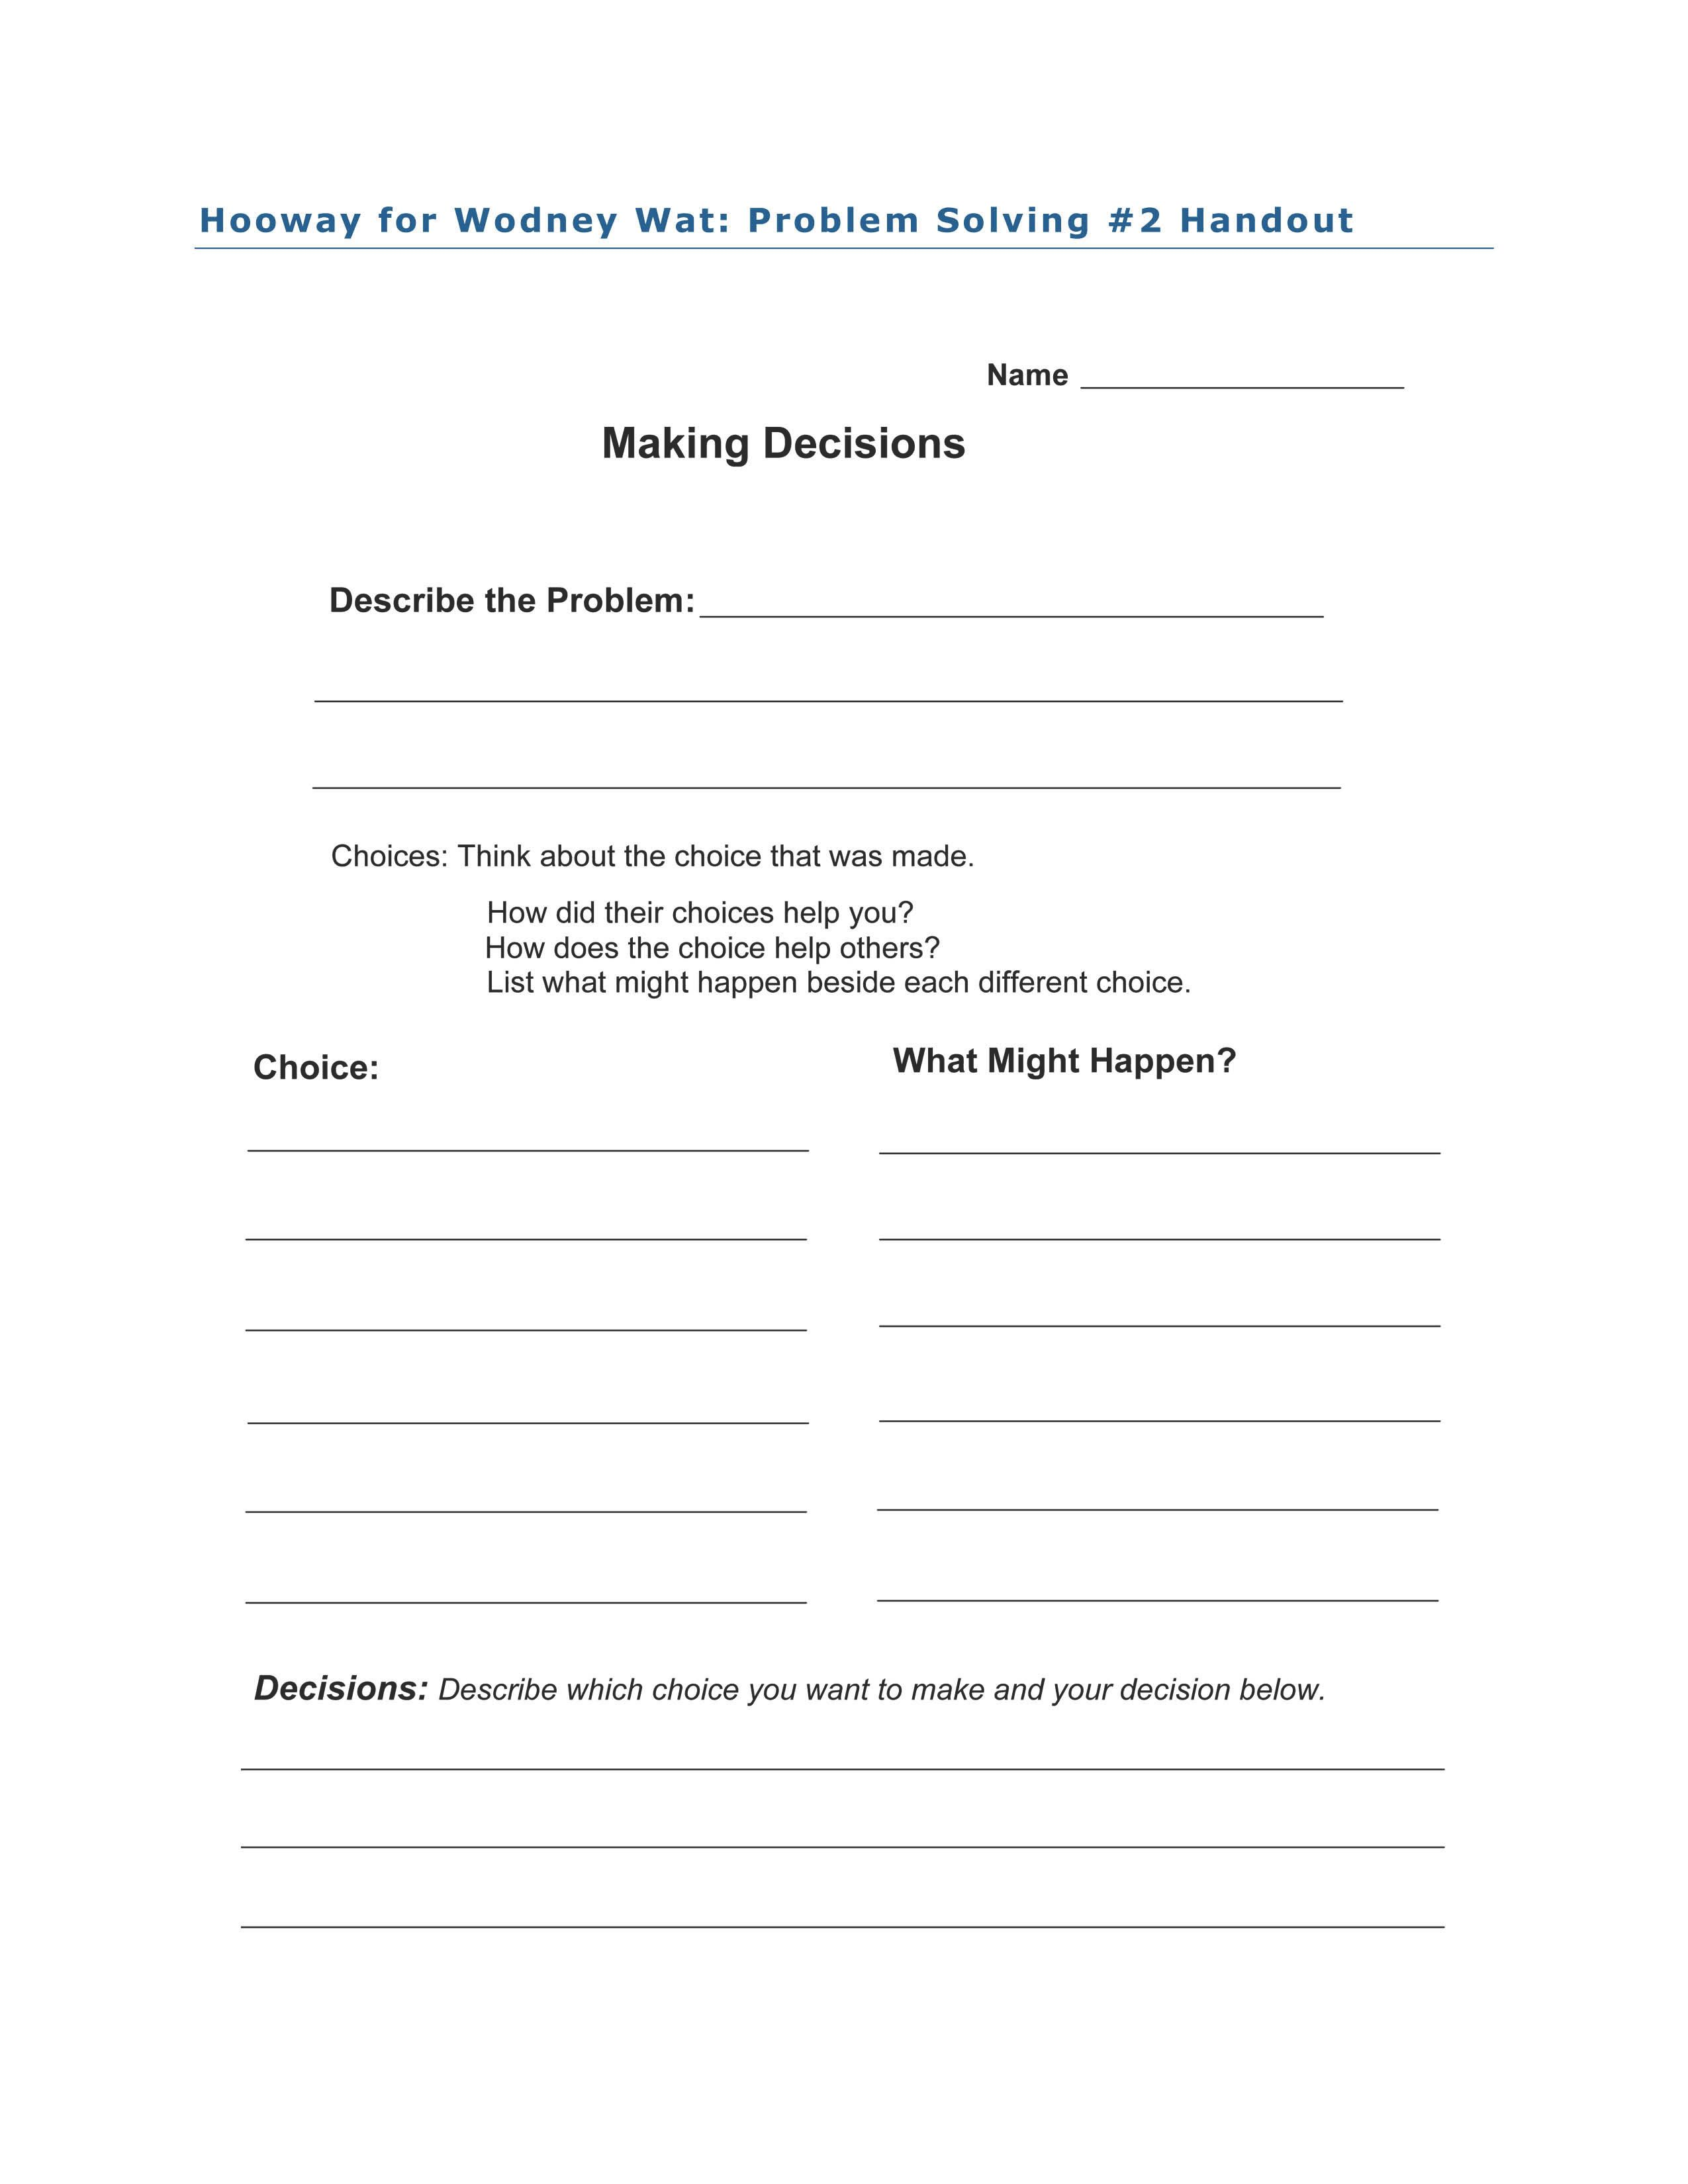 Problem Solving 2 Activity For Hooway For Wodney Wat By